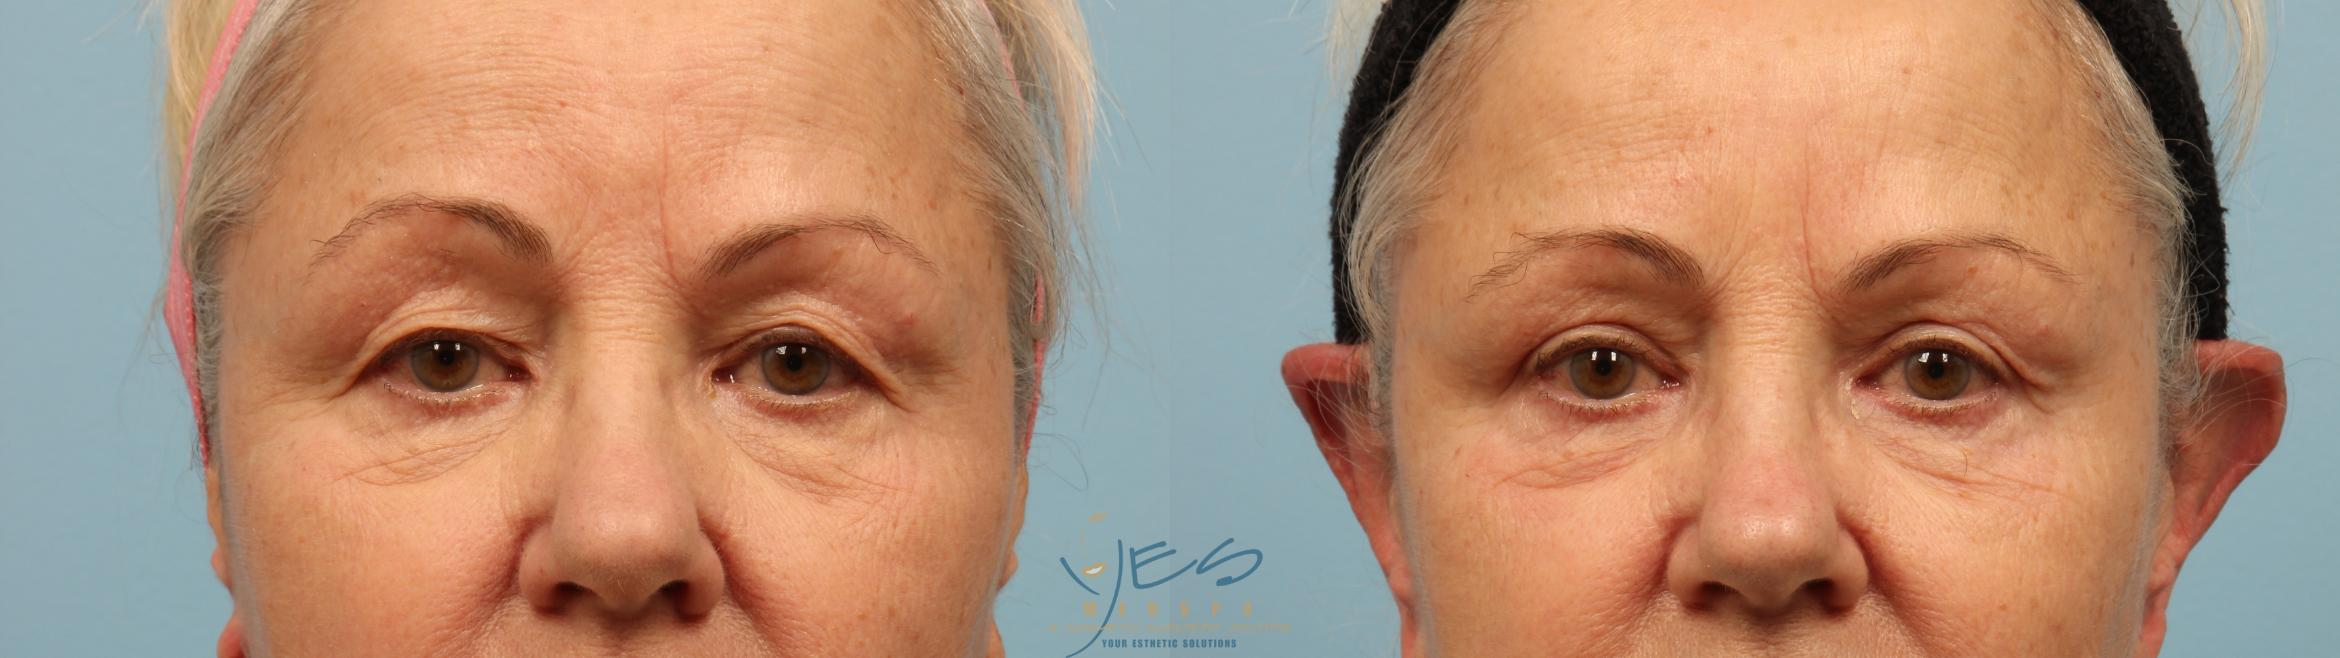 Upper Eyelid Blepharoplasty Case 294 Before & After Front | Vancouver, BC | YES Medspa & Cosmetic Surgery Centre